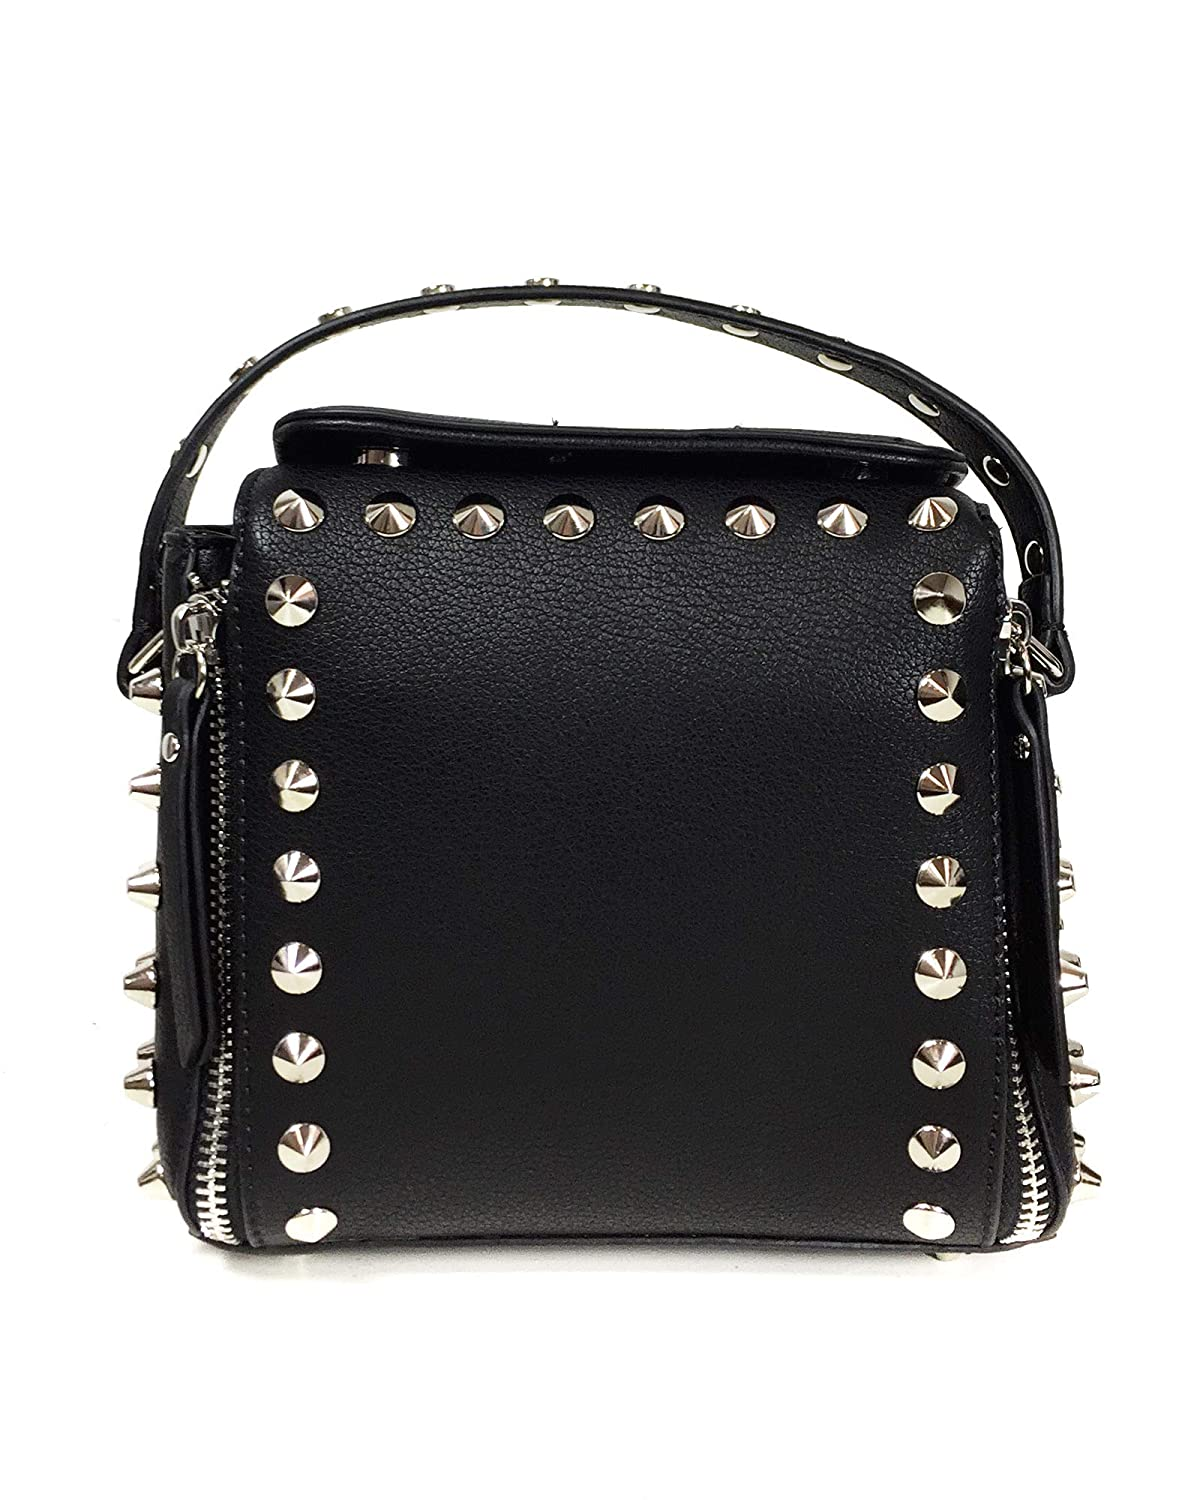 b7b08555c5 Amazon.com: Zara Women Rock crossbody bag 5664/304: Clothing